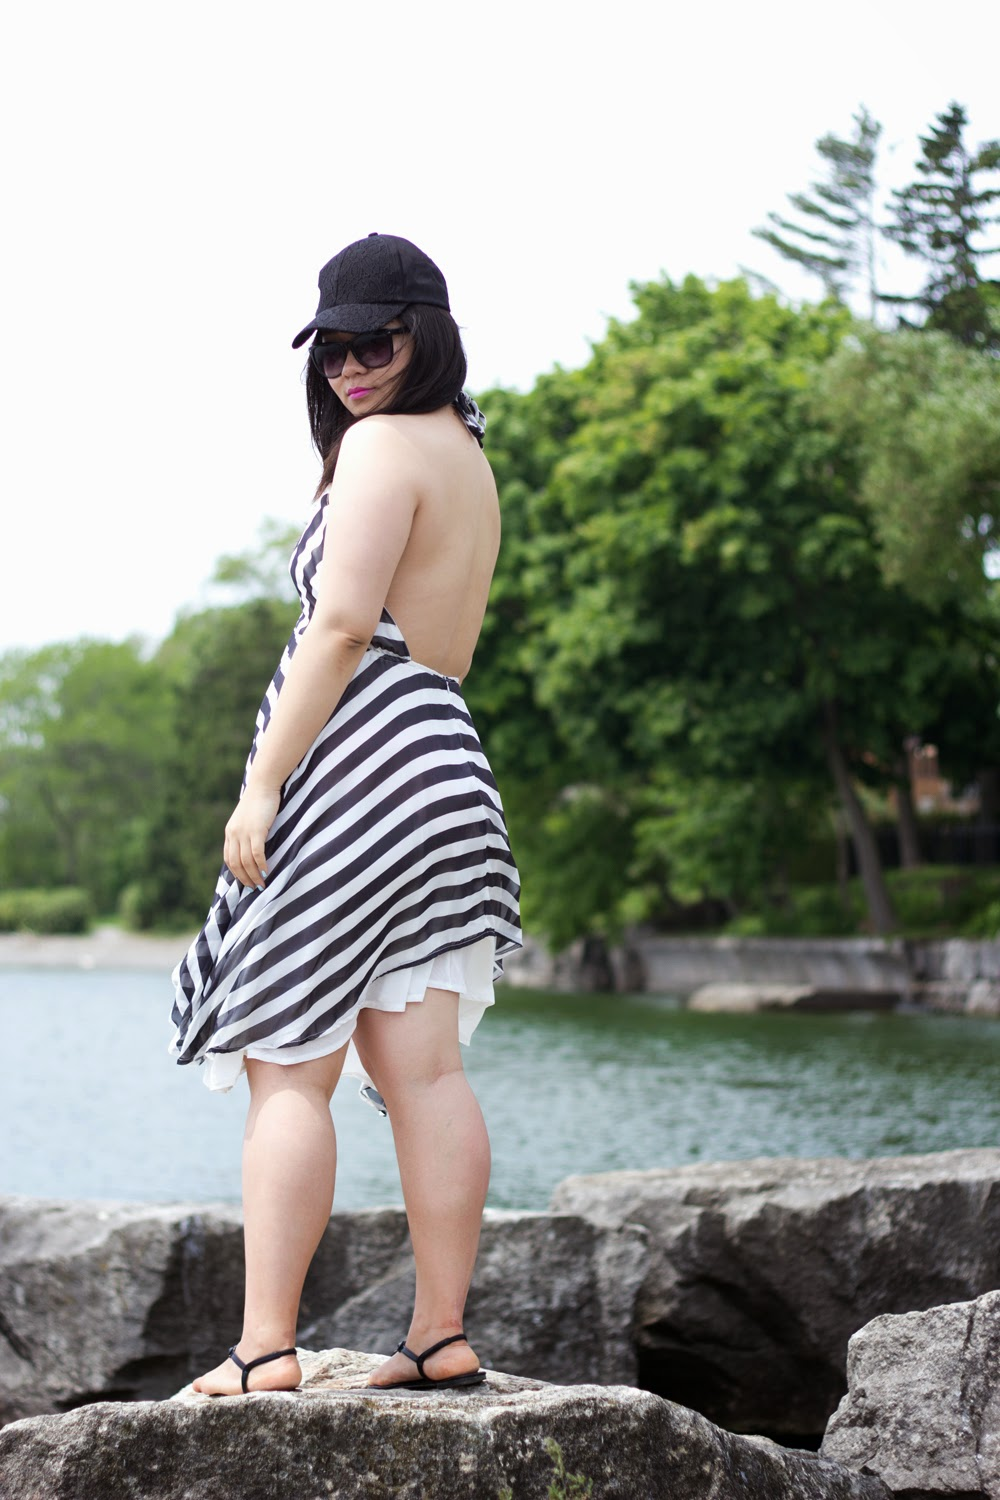 Stripe-Summer-Dress-Backless-Cut, Baseball-Cap-Lace-Details, lake-ontario